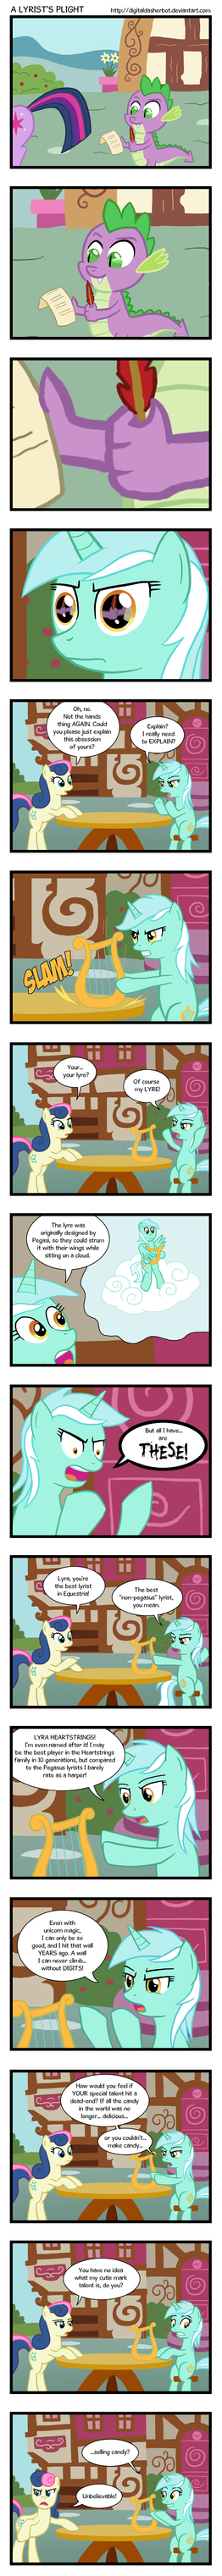 A Lyrist's Plight by DigitalDasherBot